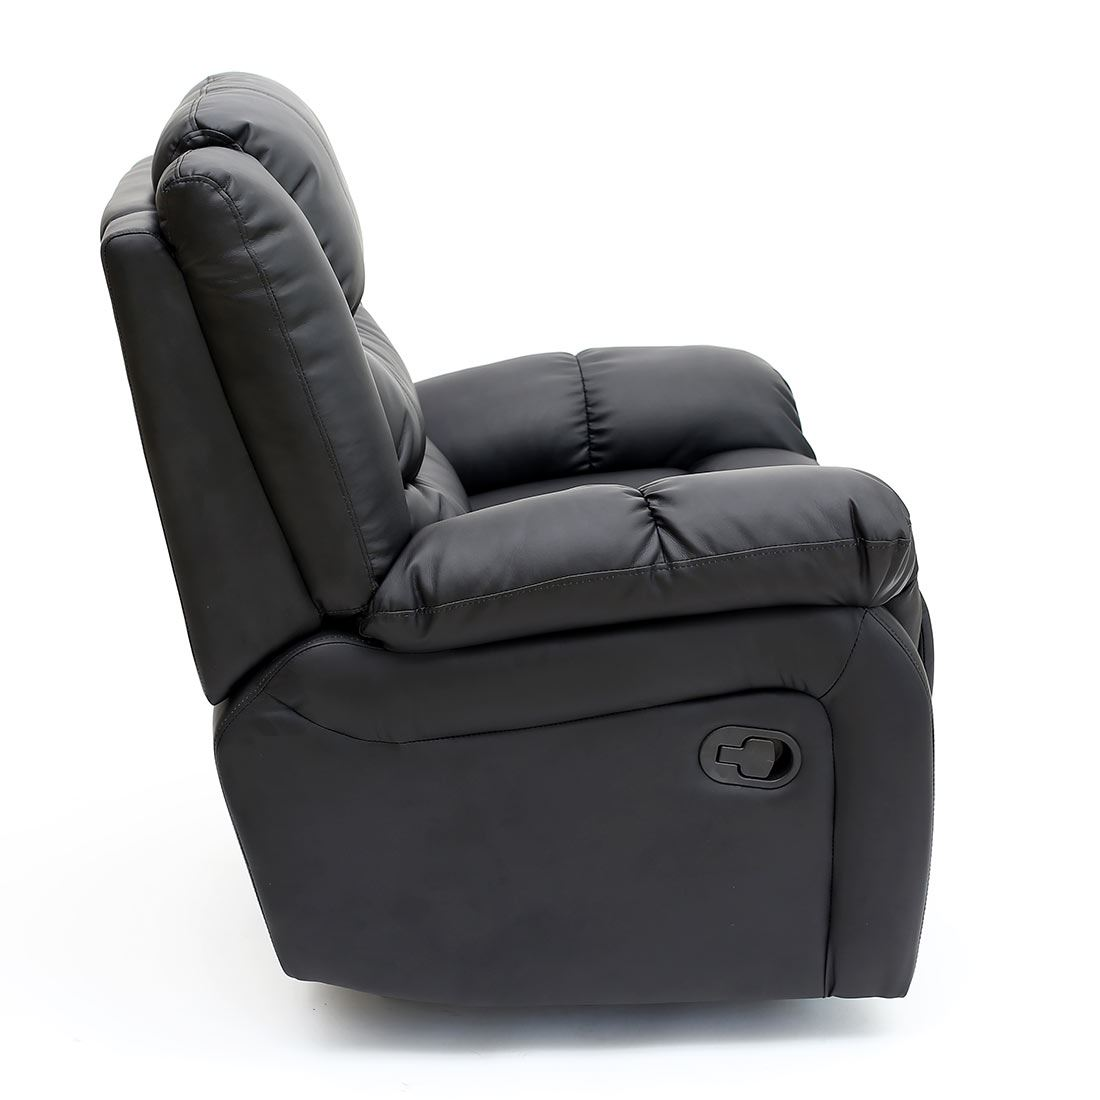 reclining gaming chair chairs for home seattle leather recliner armchair sofa lounge